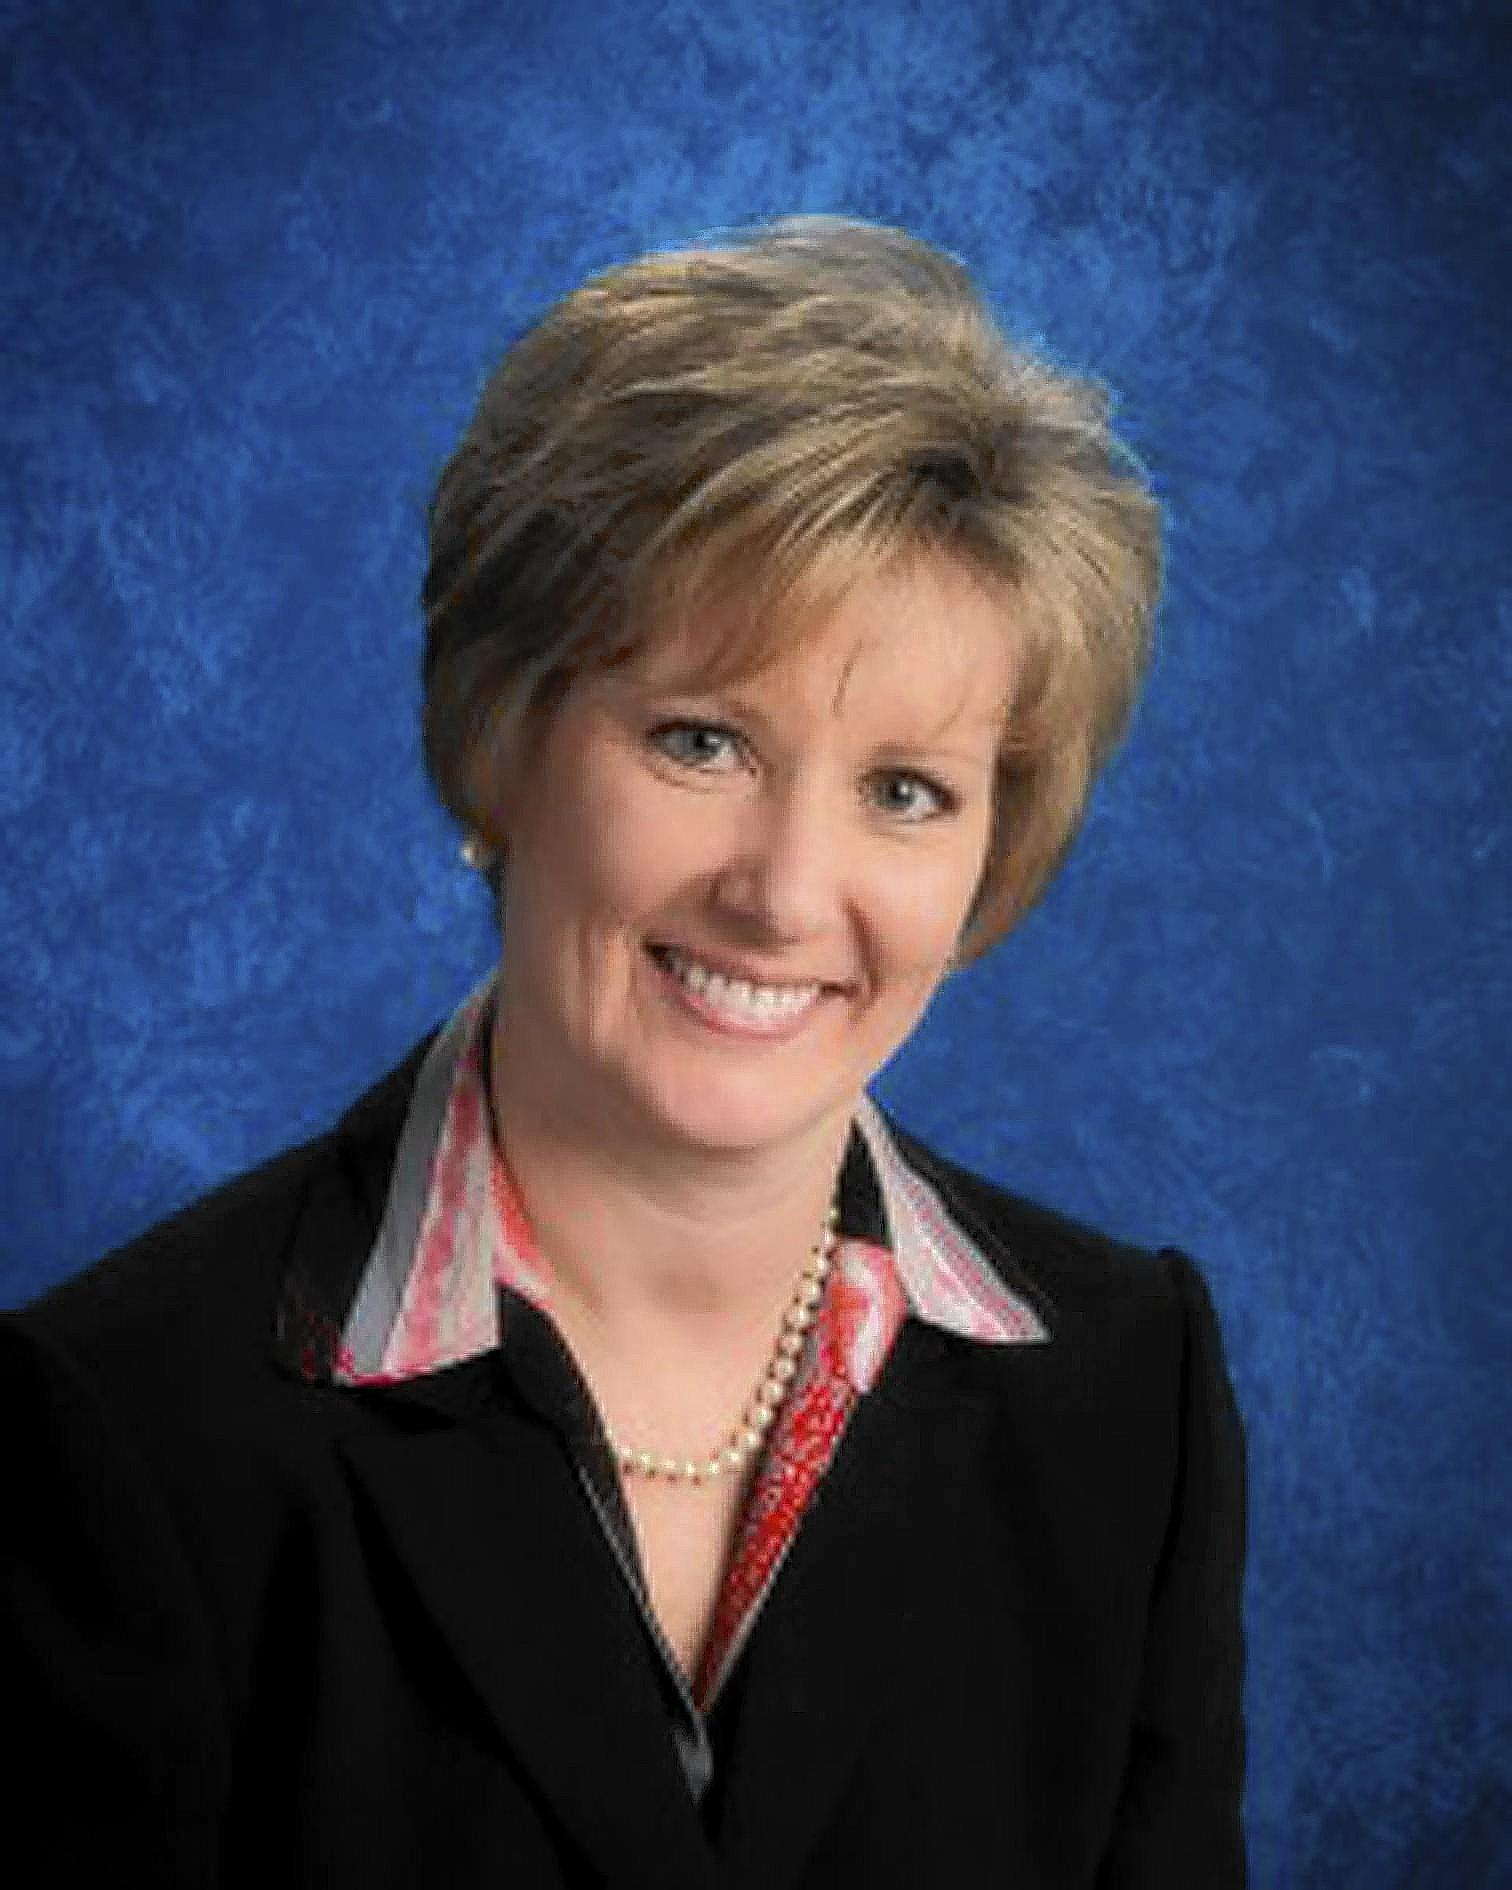 Stacy Gober, Bethlehem Area School District chief financial officer, is the subject of this week's Q&A.